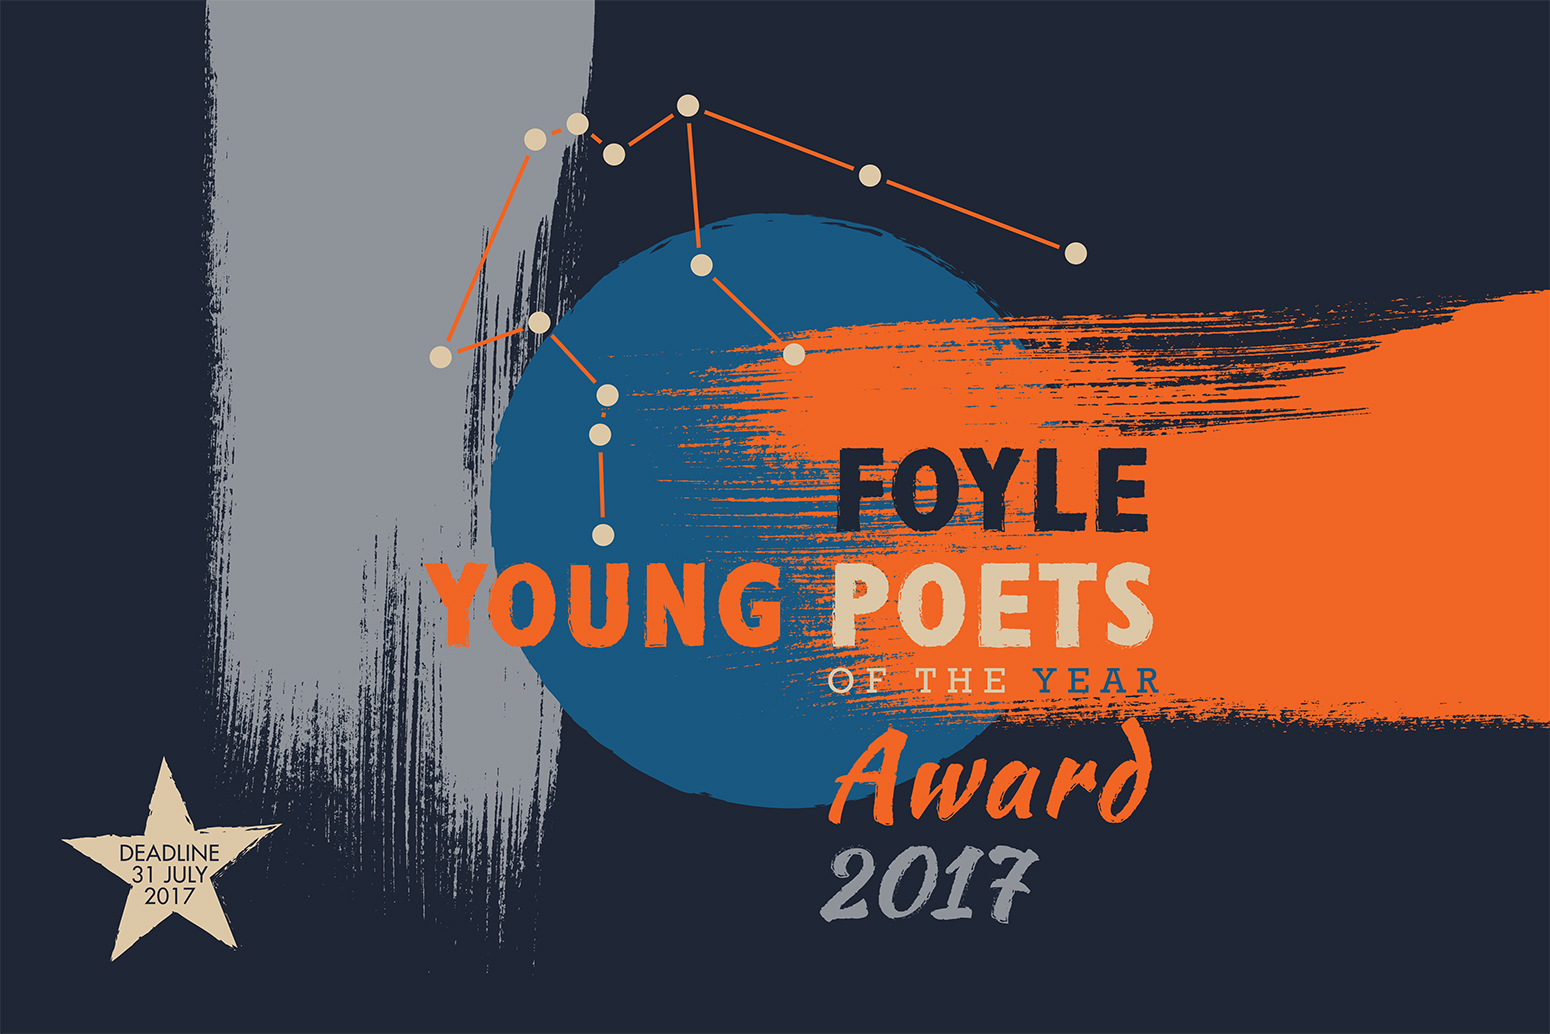 Foyle Young Poets of the Year Award image 2017